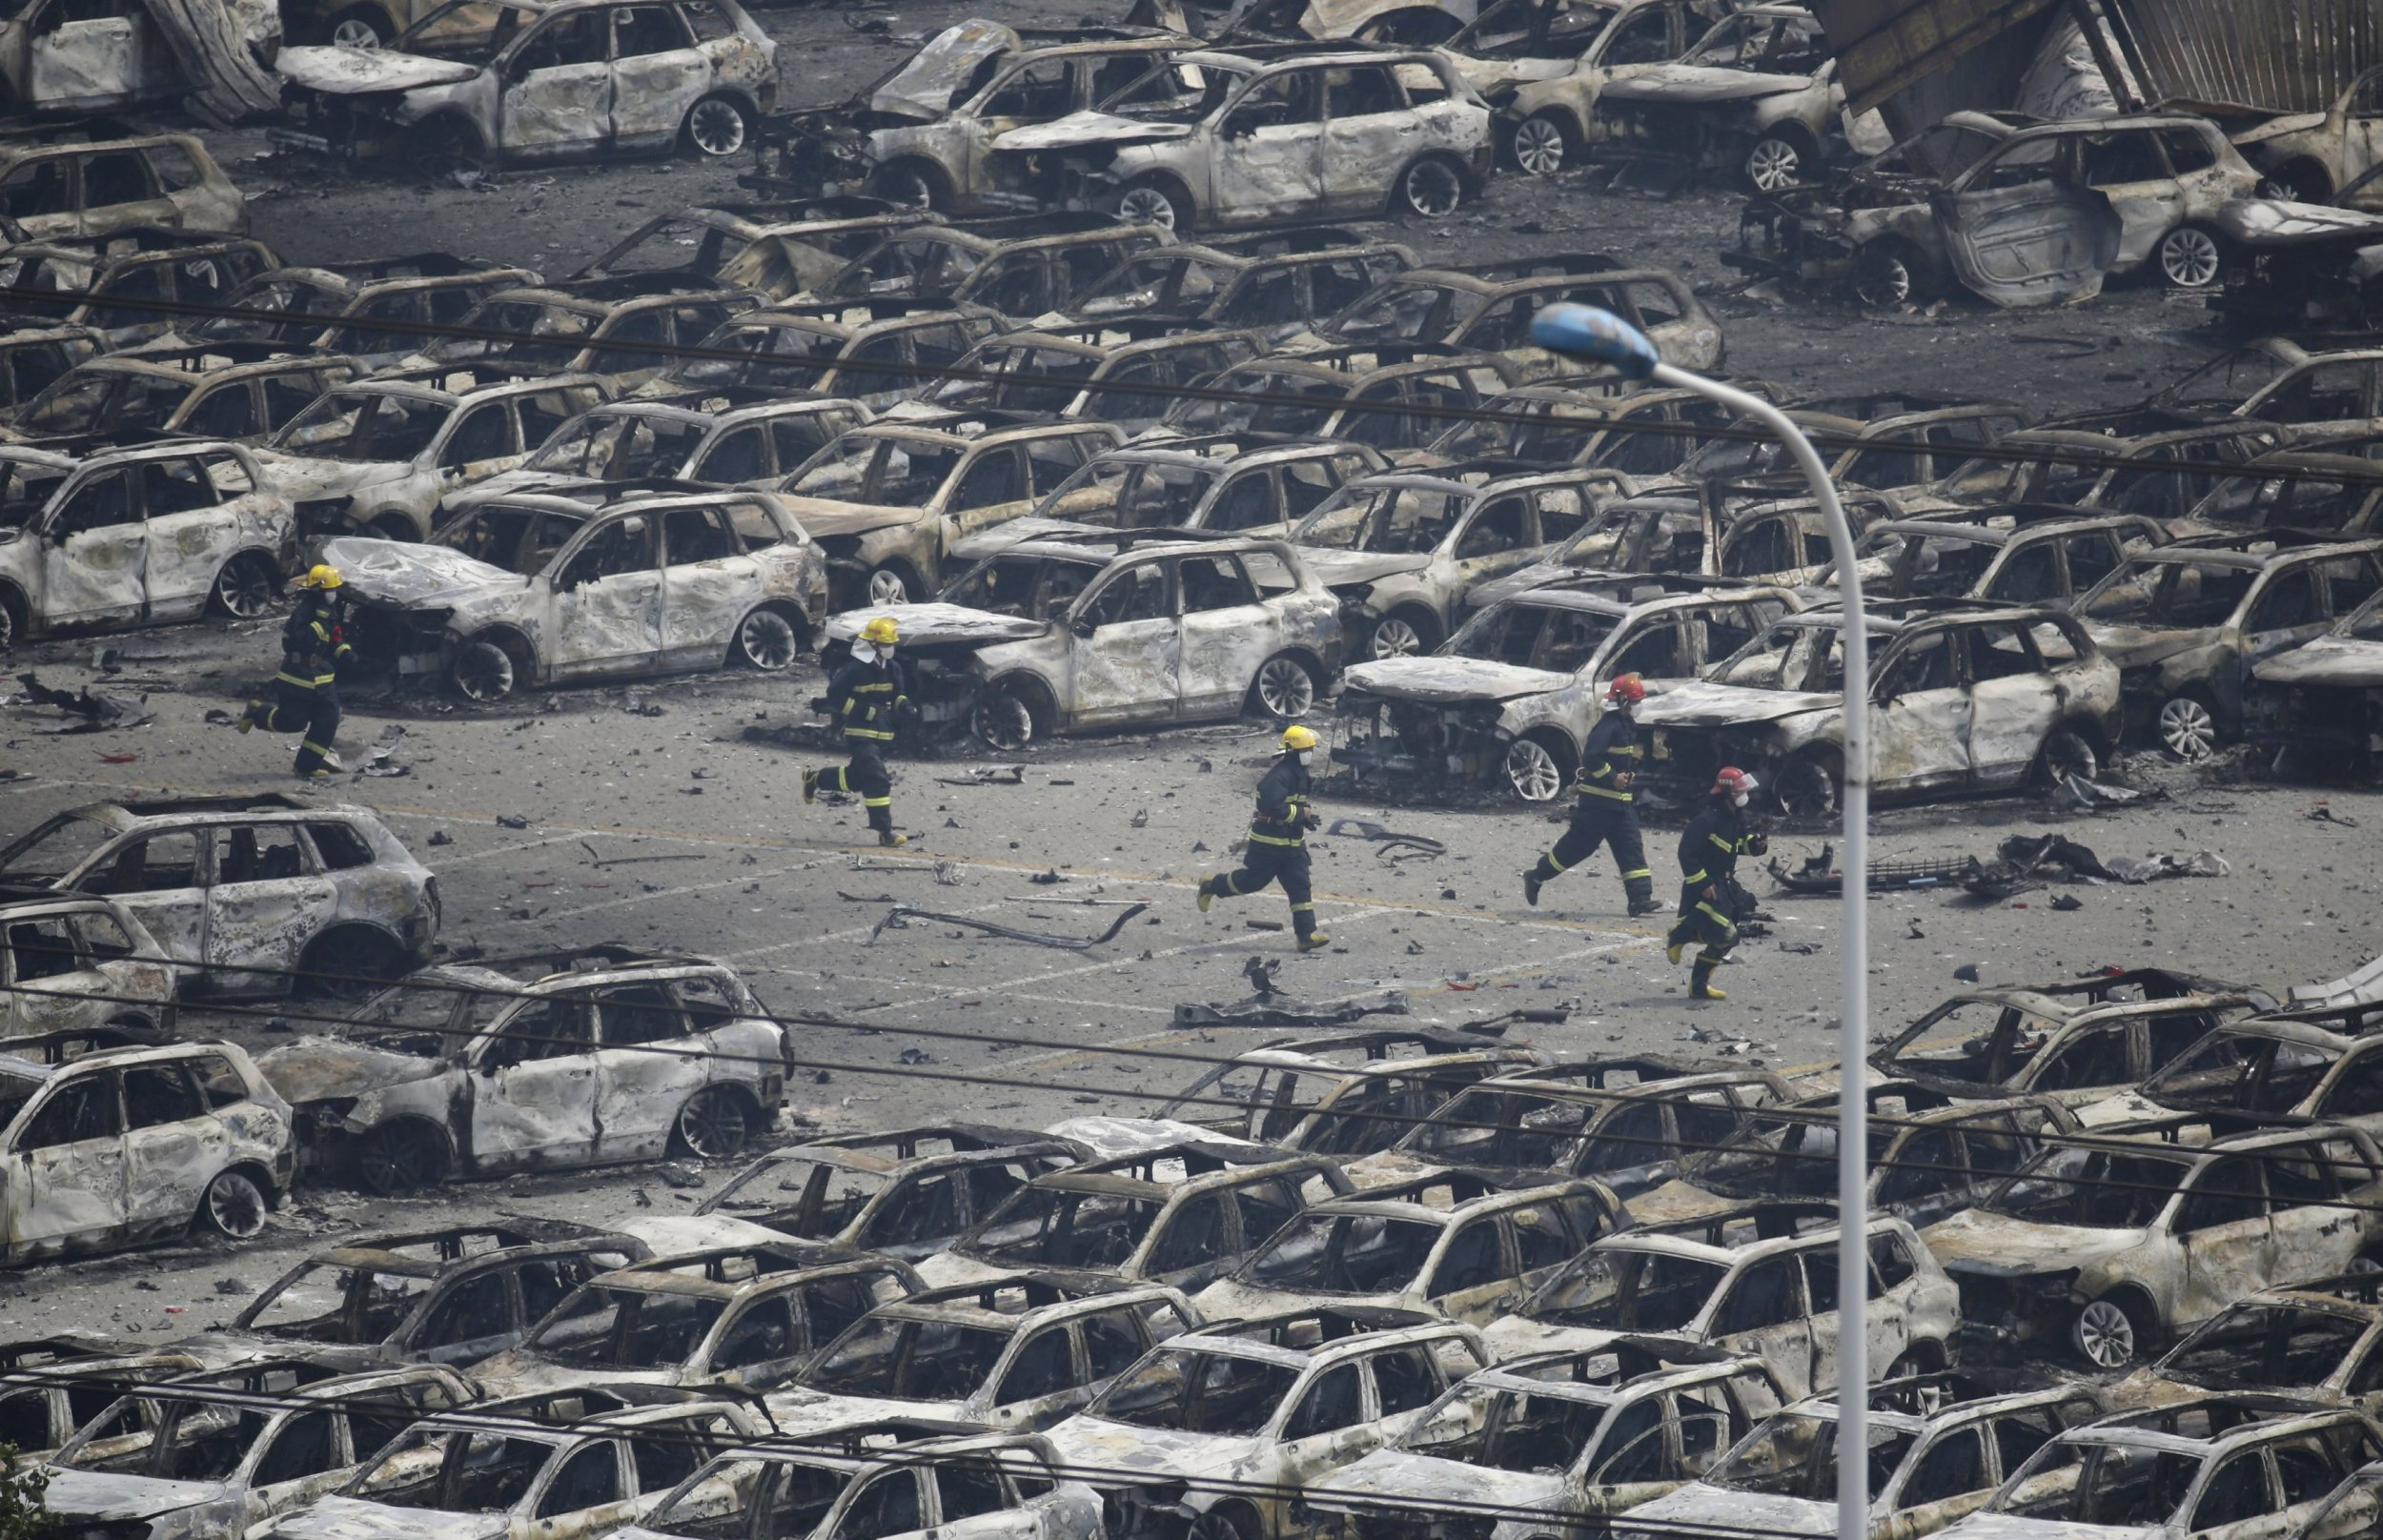 Tianjin China  city images : Video Shows Eerie Aftermath of Explosion in Tianjin, China